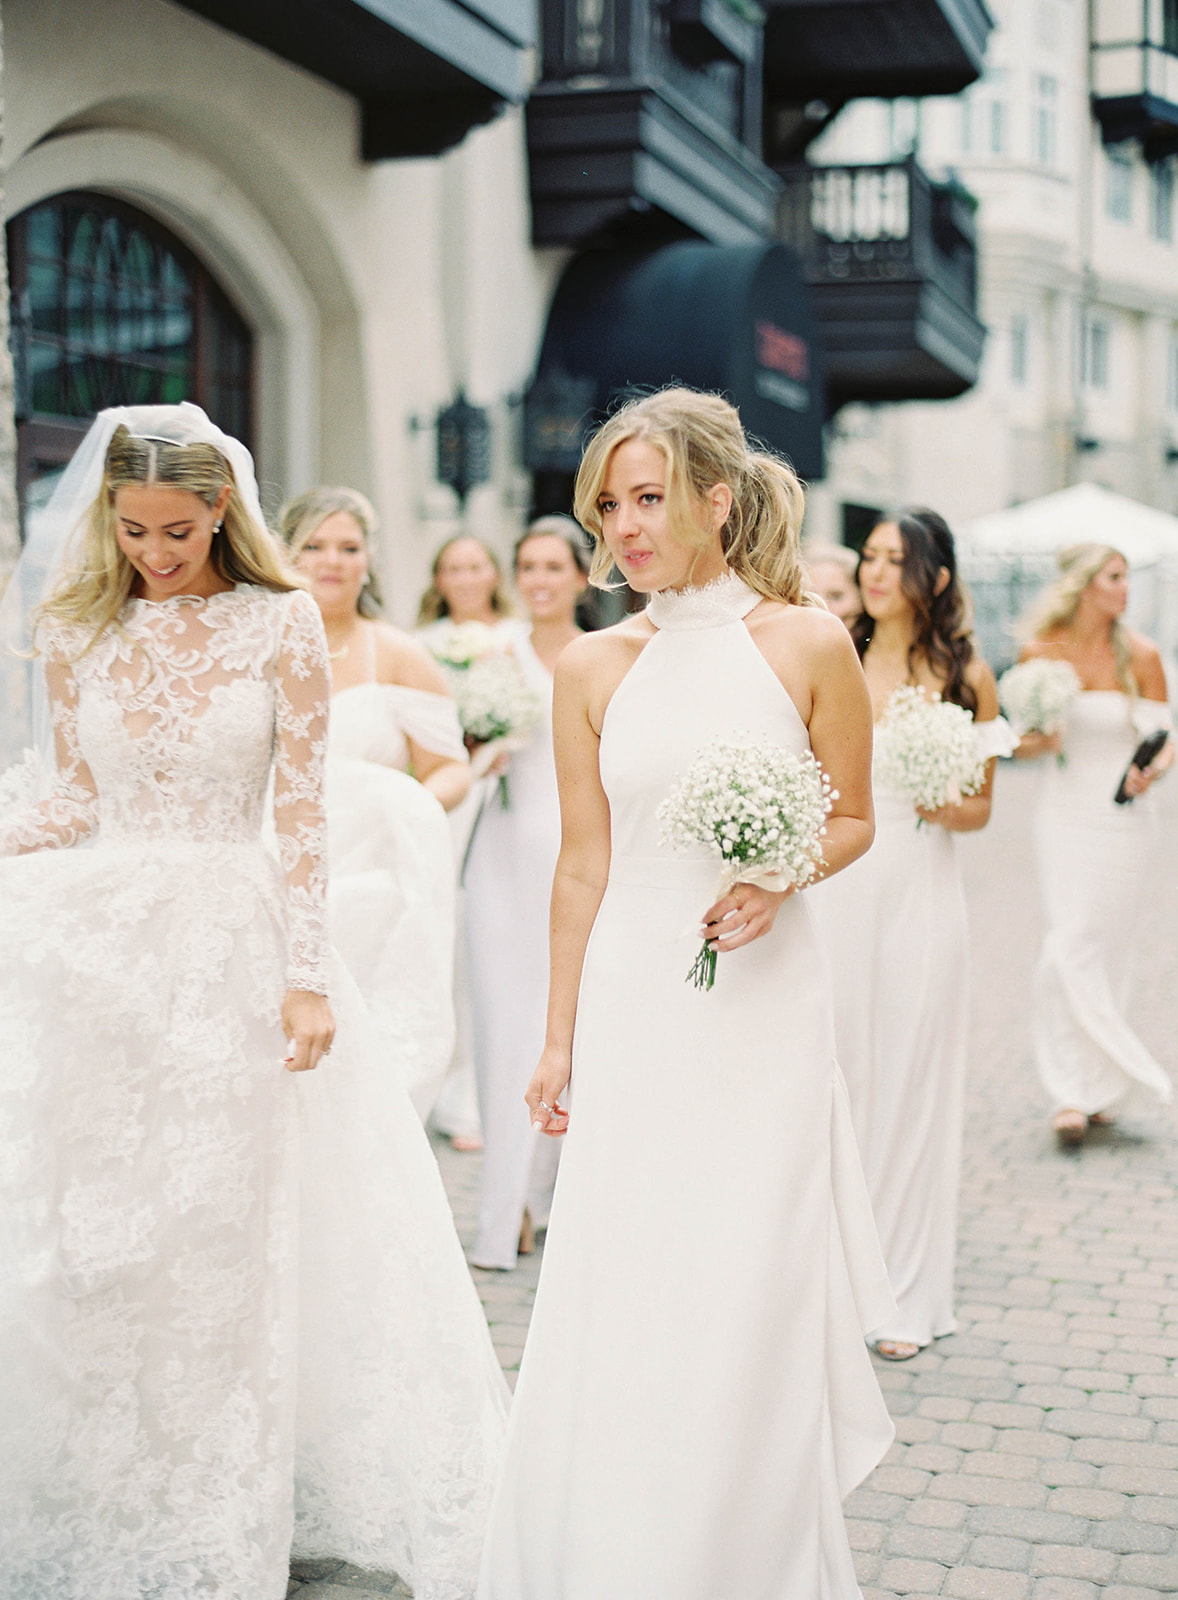 bride bridesmaids walking in white dresses